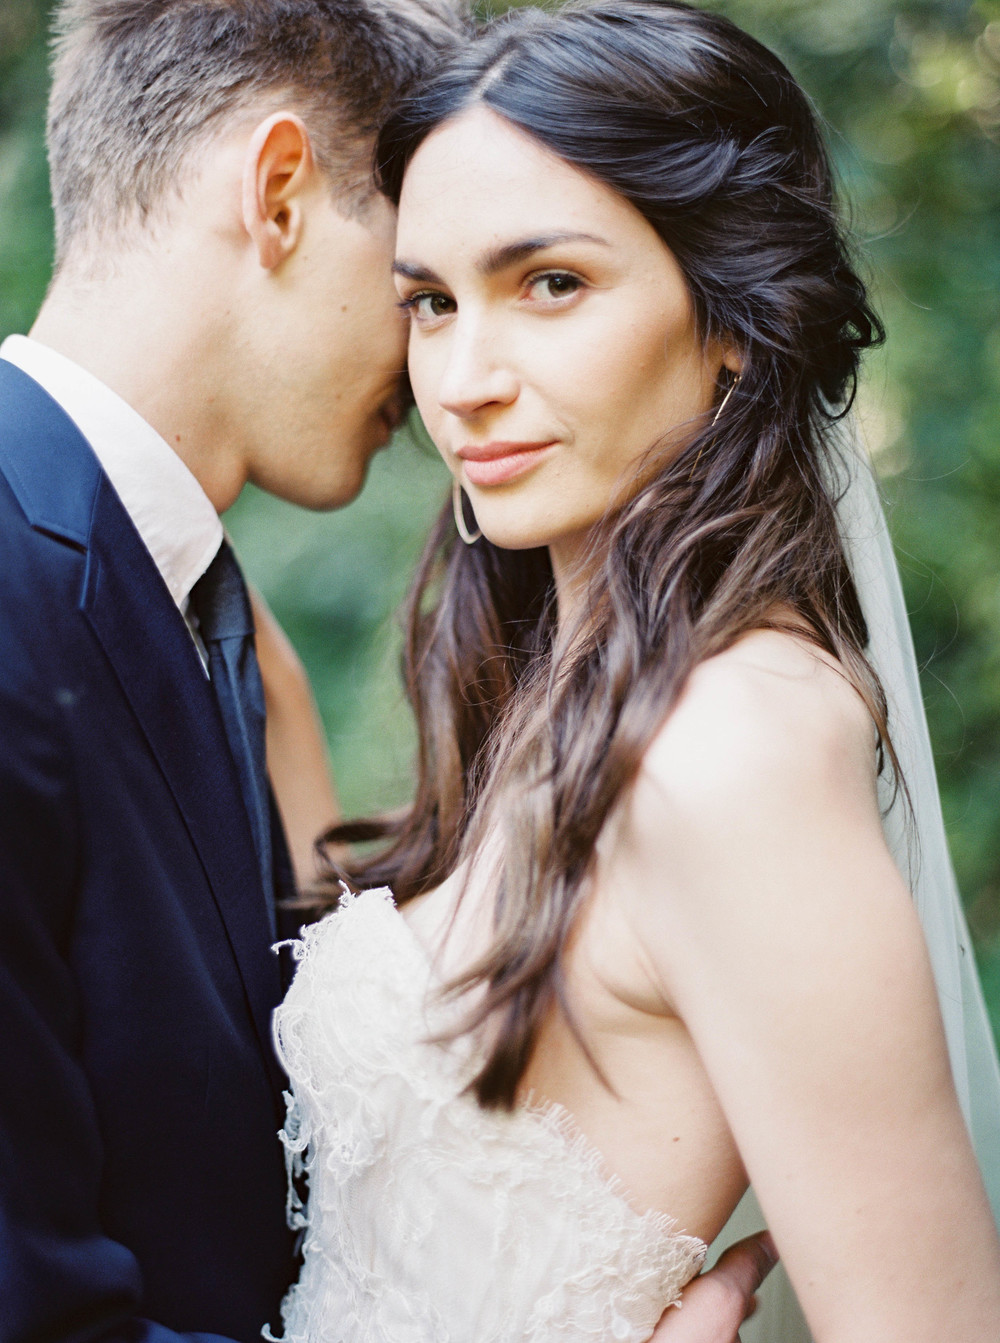 Meghan Mehan Fine Art Photography - Elk, California - Wedding Portraits_Jillian and Alex - 008.jpg